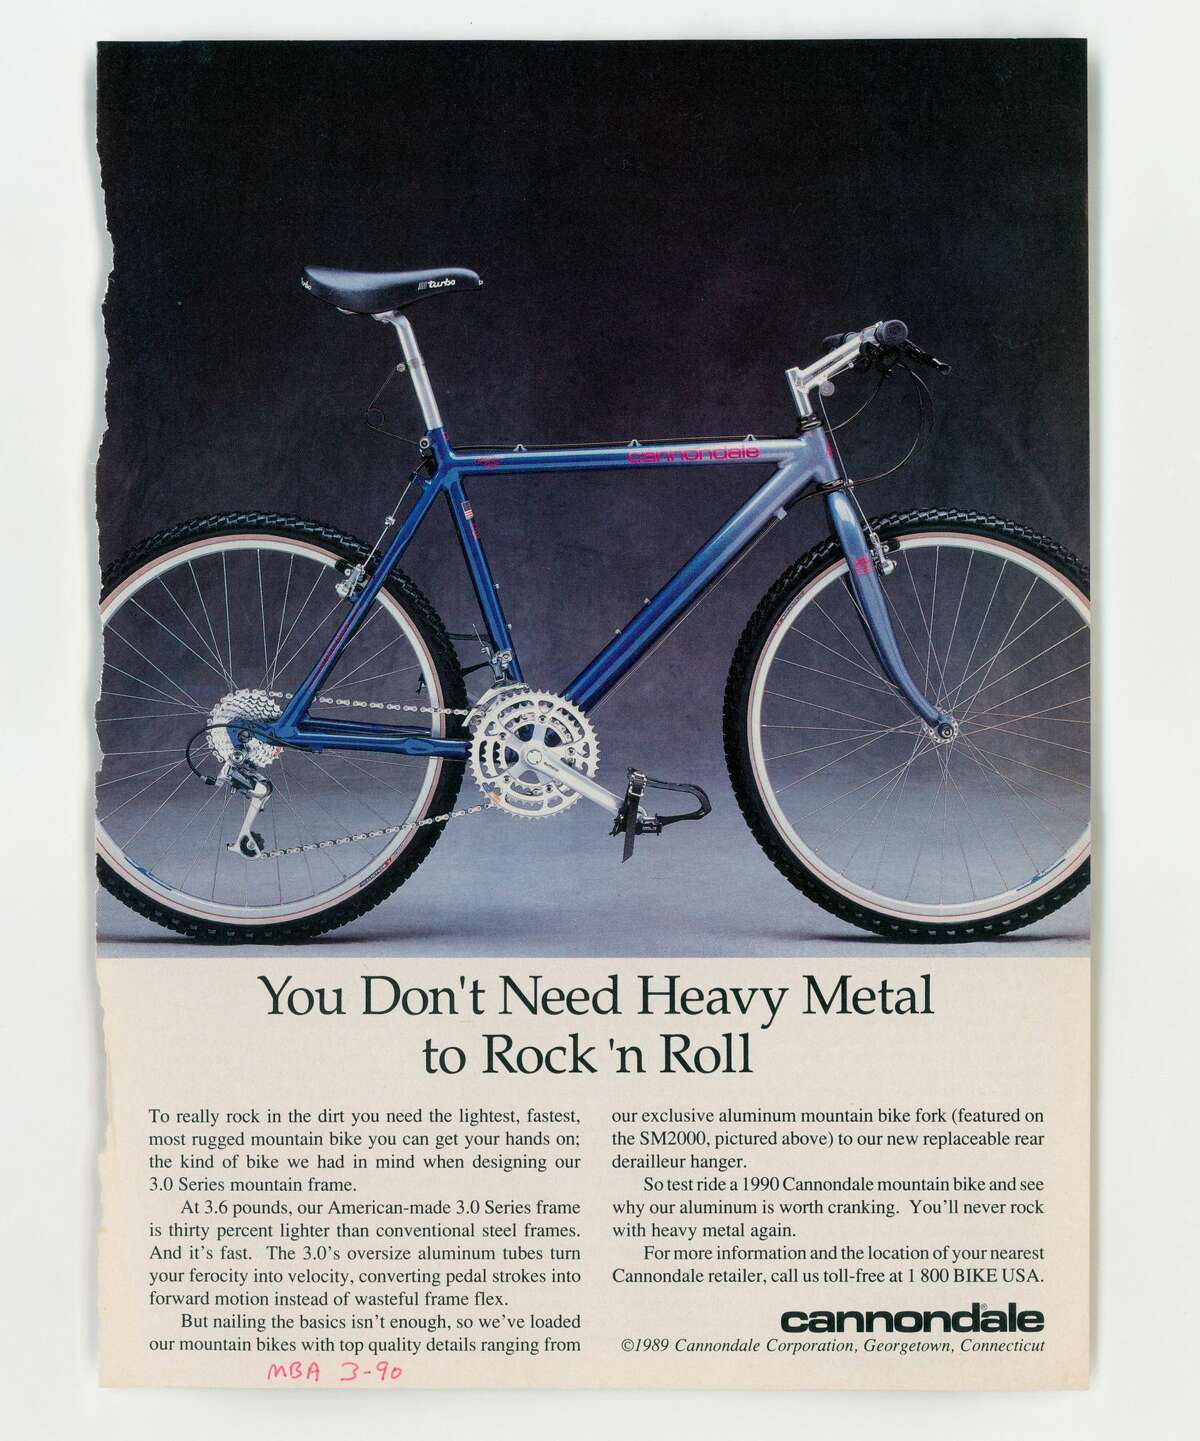 A Cannondale advertisement from 1990.